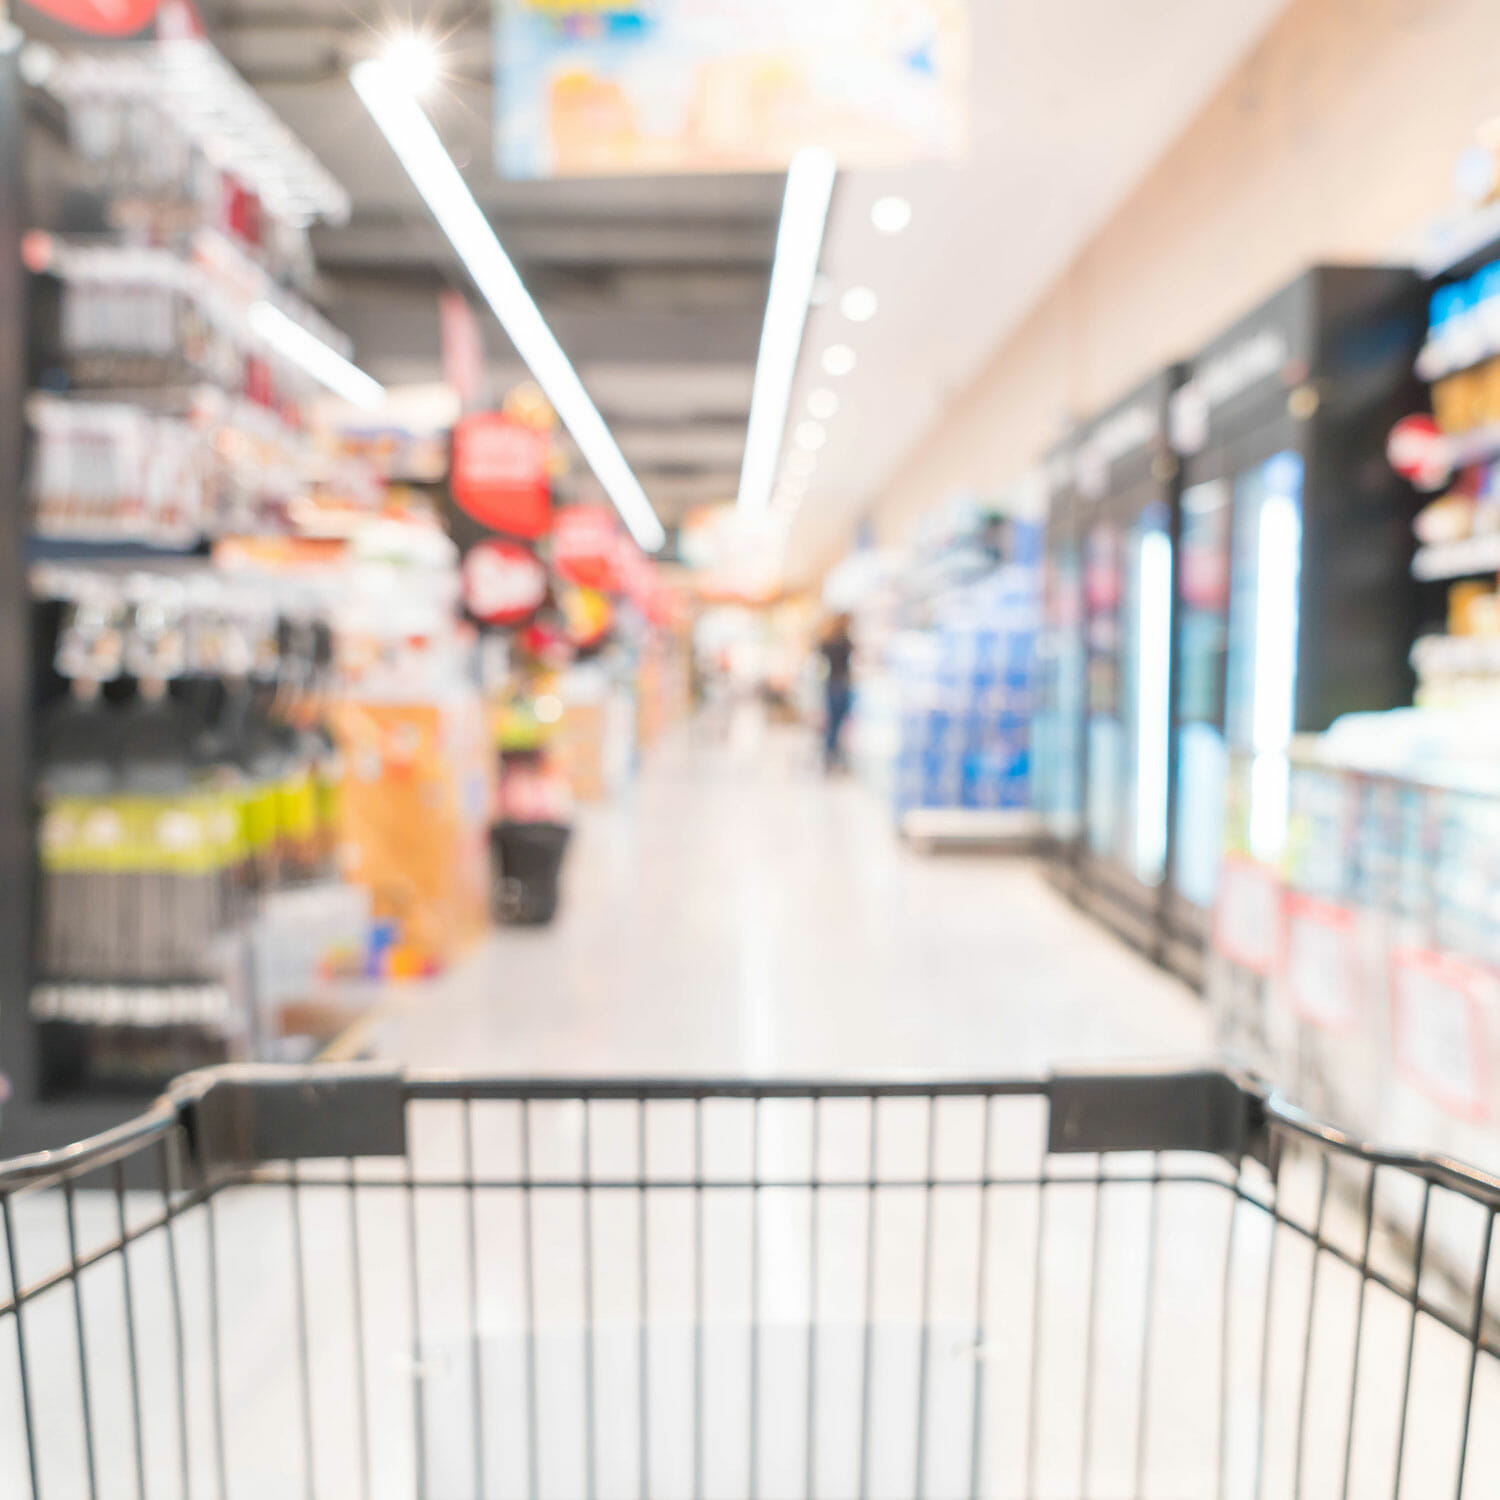 Finding a new grocery store can be a top priority after a move.